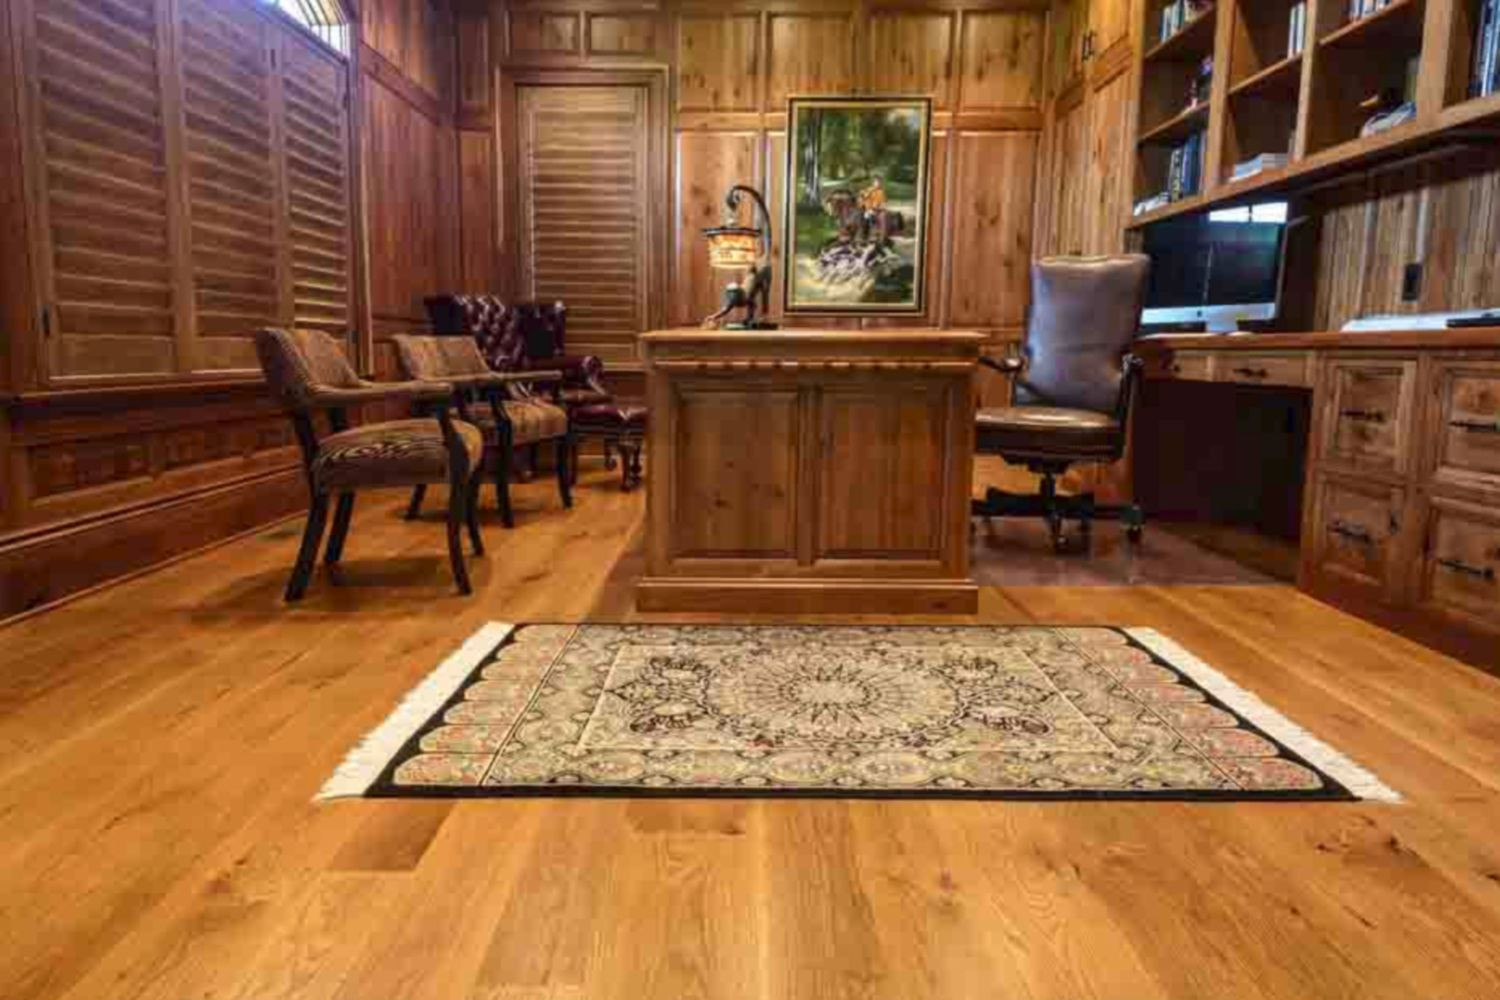 Unfinished Hardwood Flooring Canada Of top 5 Brands for solid Hardwood Flooring for the Woods Company White Oak 1500 X 1000 56a49f6d5f9b58b7d0d7e1db